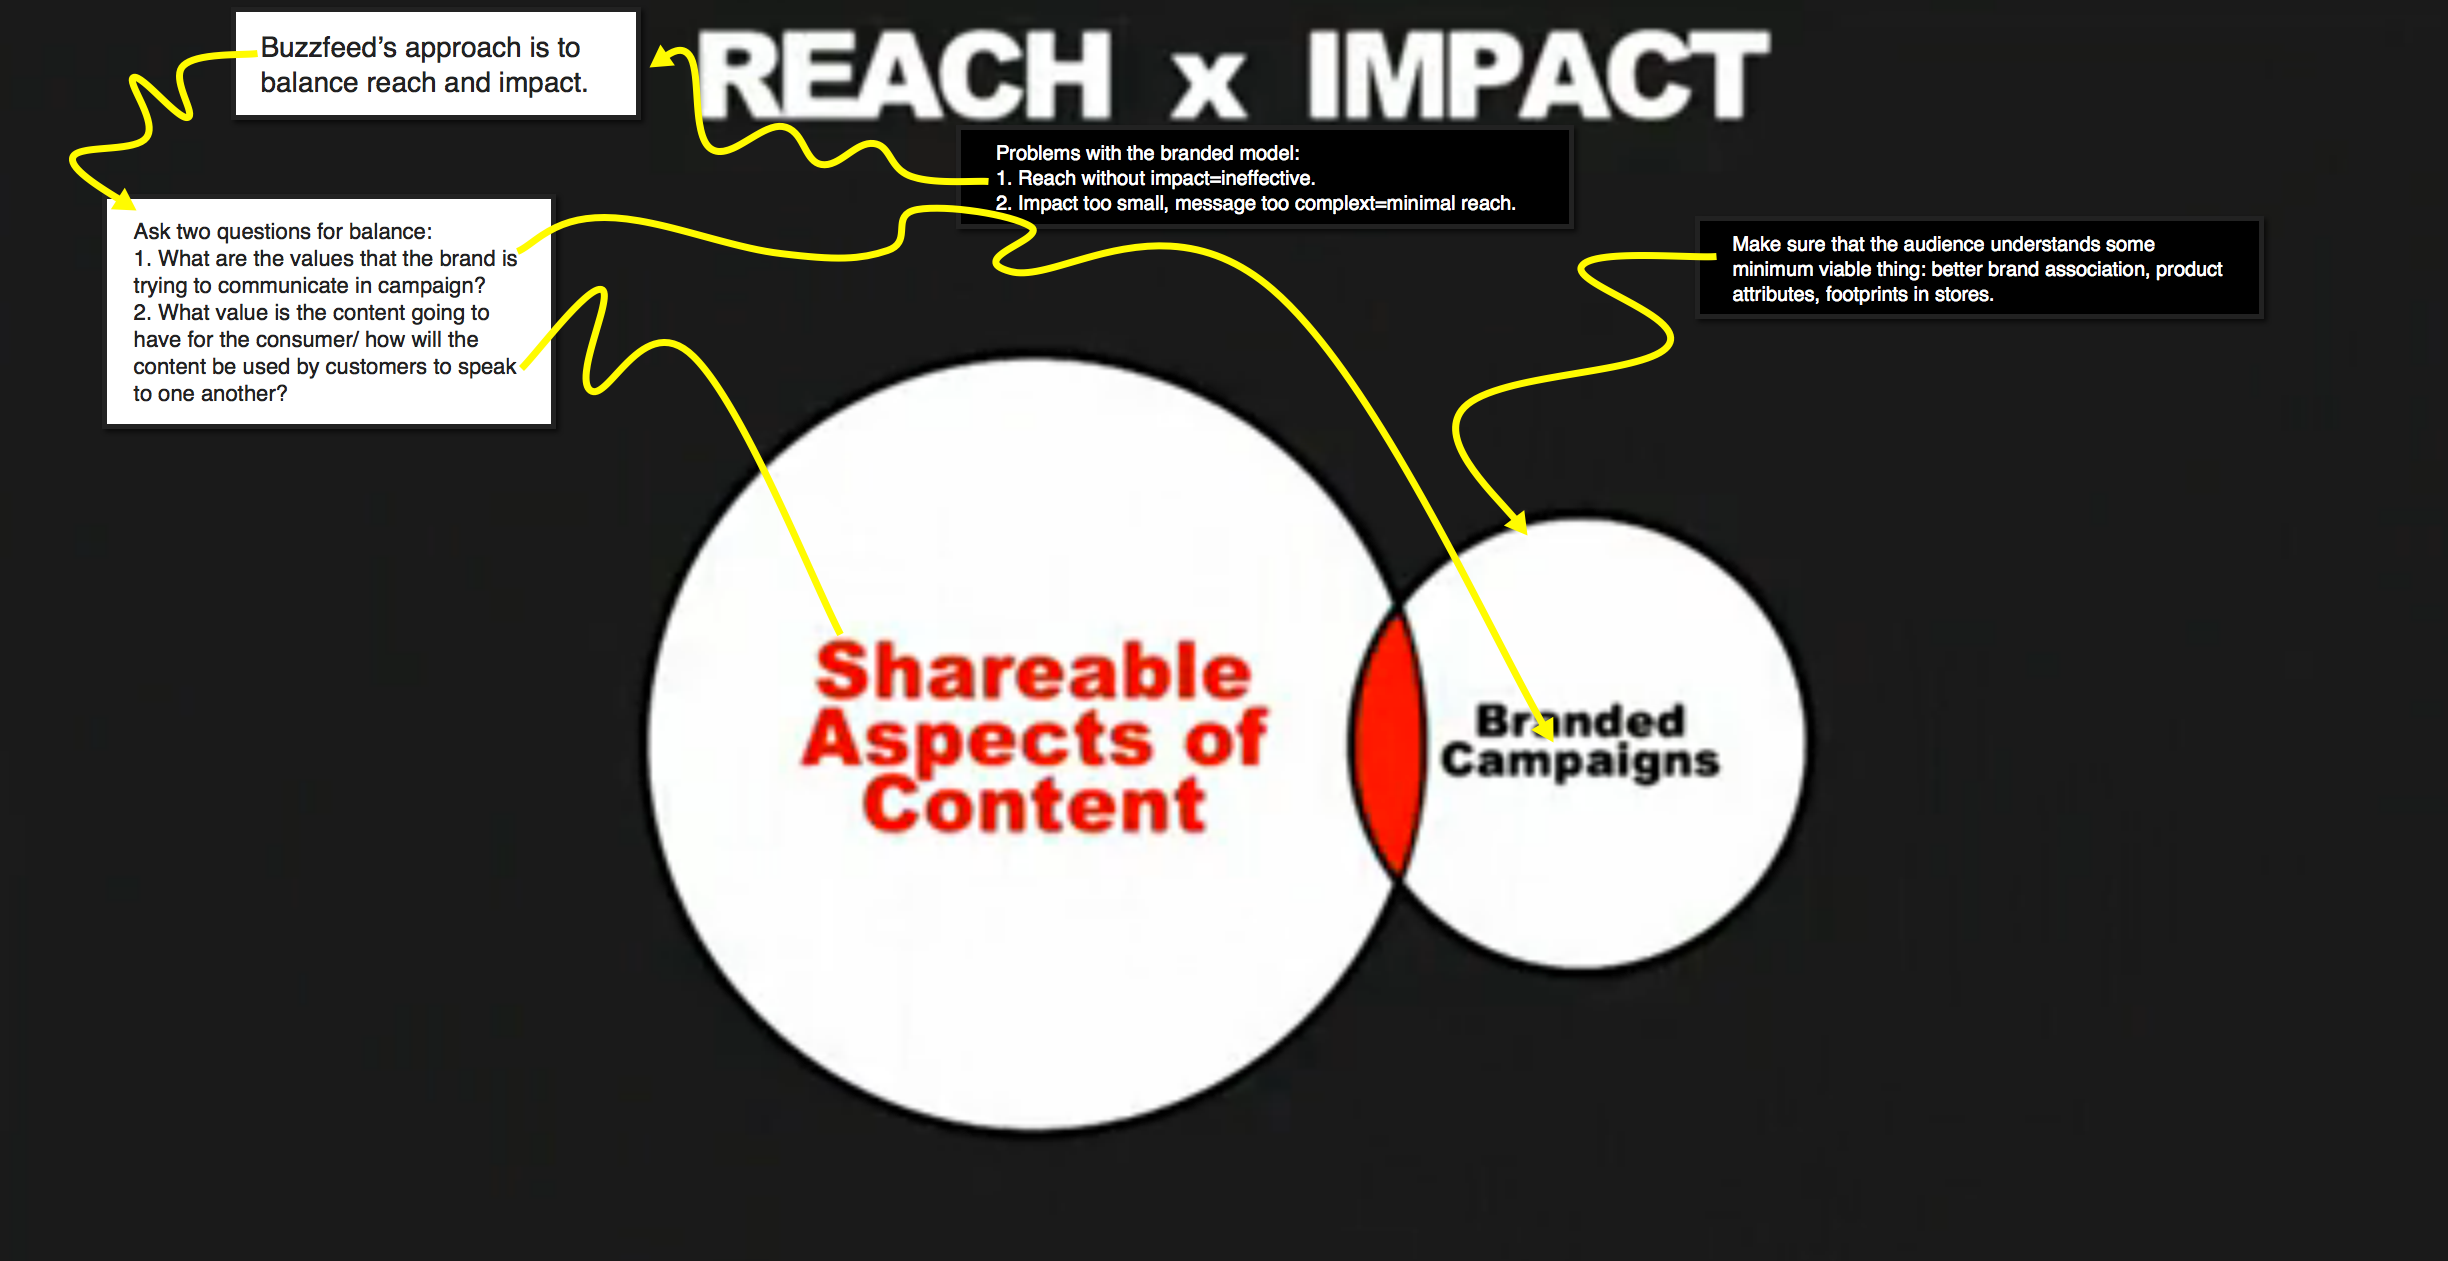 buzzfeed approach to reach and impact